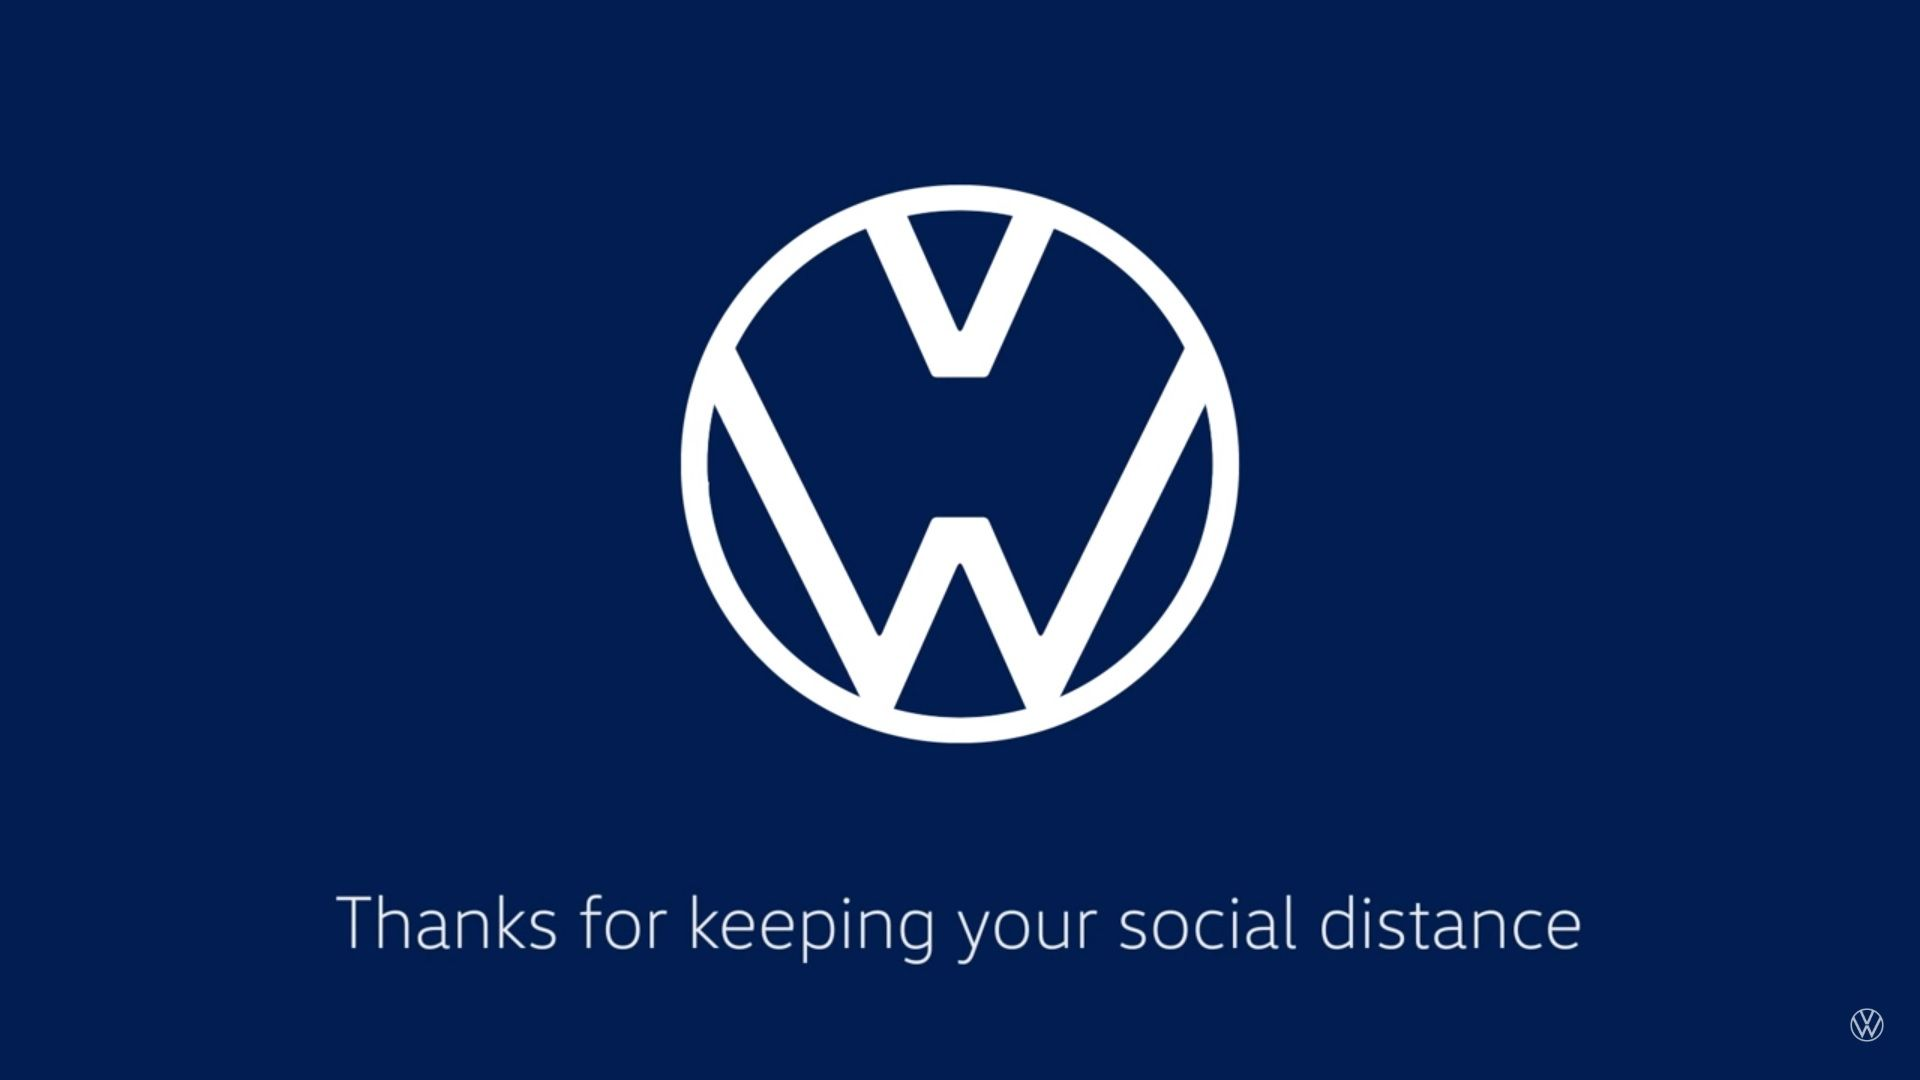 Mercedes Benz Audi And Volkswagen Show New Logos To Encourage Social Distancing Top Speed In 2020 Volkswagen Logo Redesign Volkswagen Logo